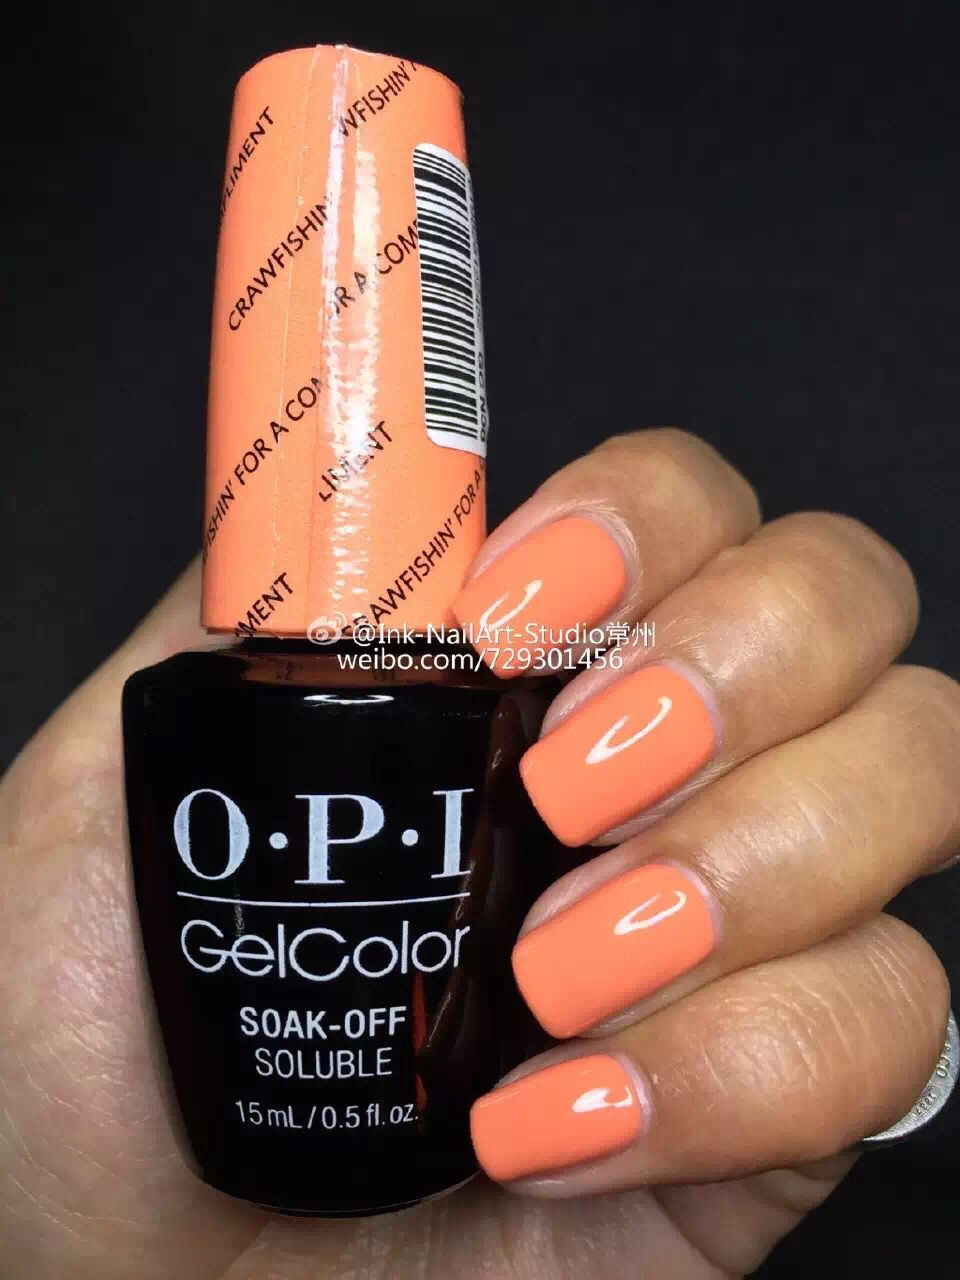 OPI New Orleans | OPI Gelcolor | Pinterest | OPI, Nail nail and Gel ...